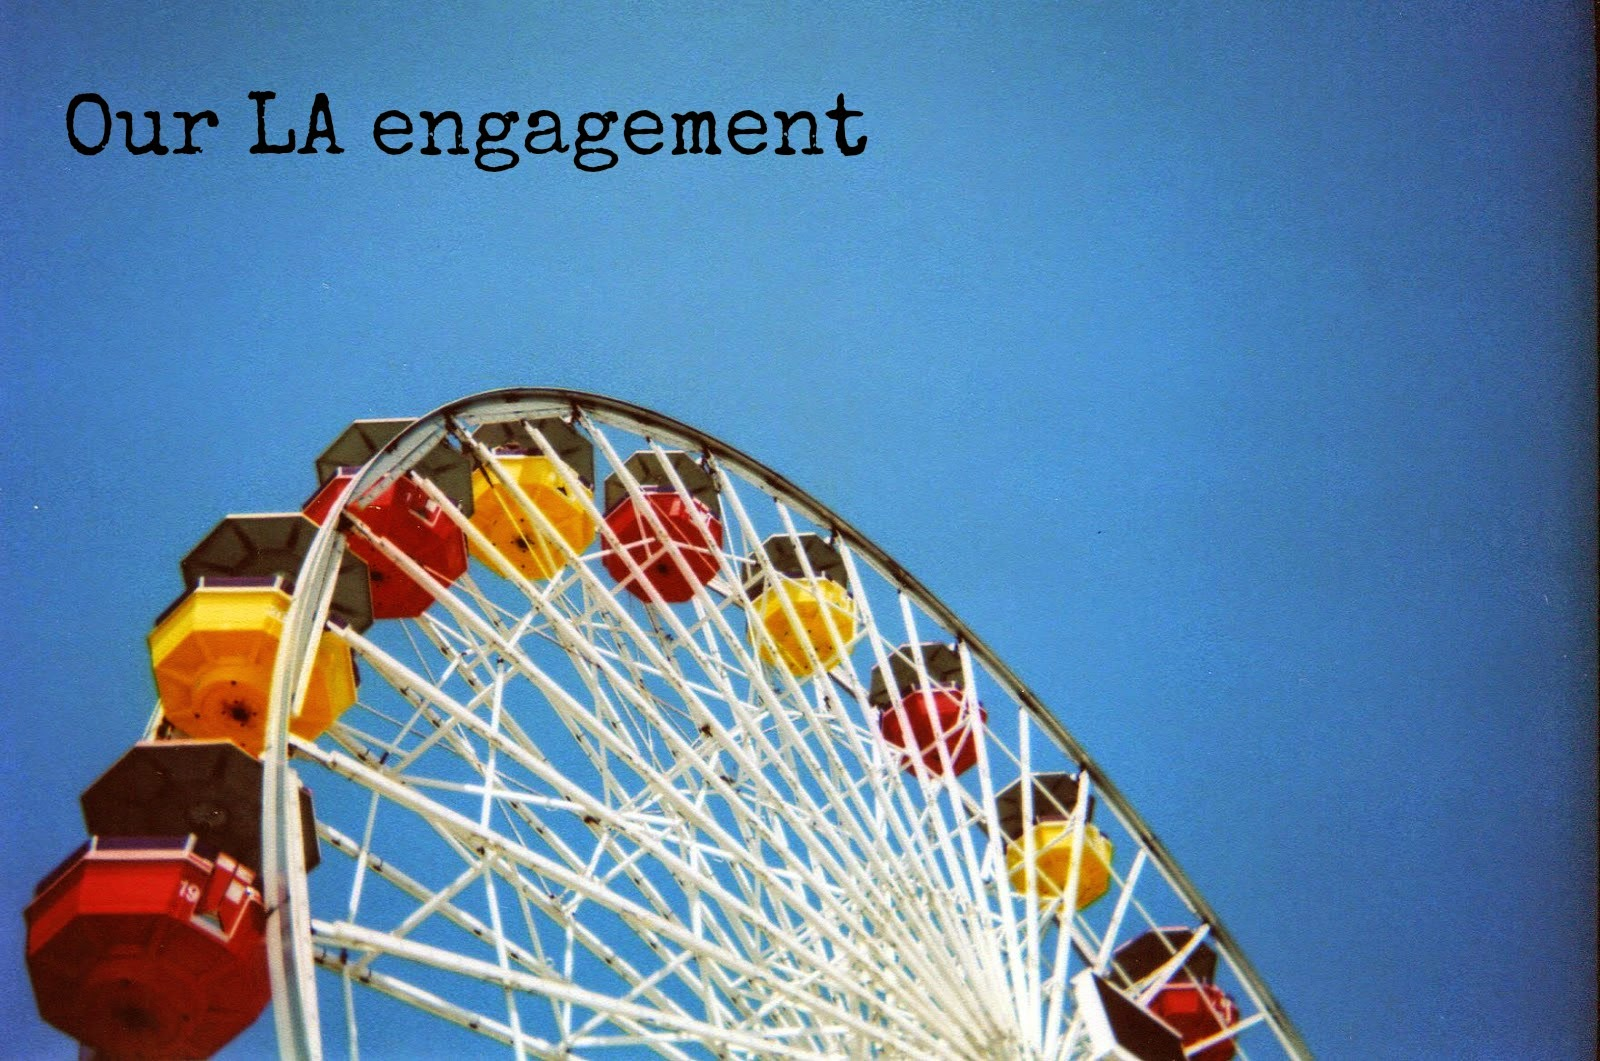 http://talesonfilm.blogspot.co.uk/2014/10/our-la-engagement.html